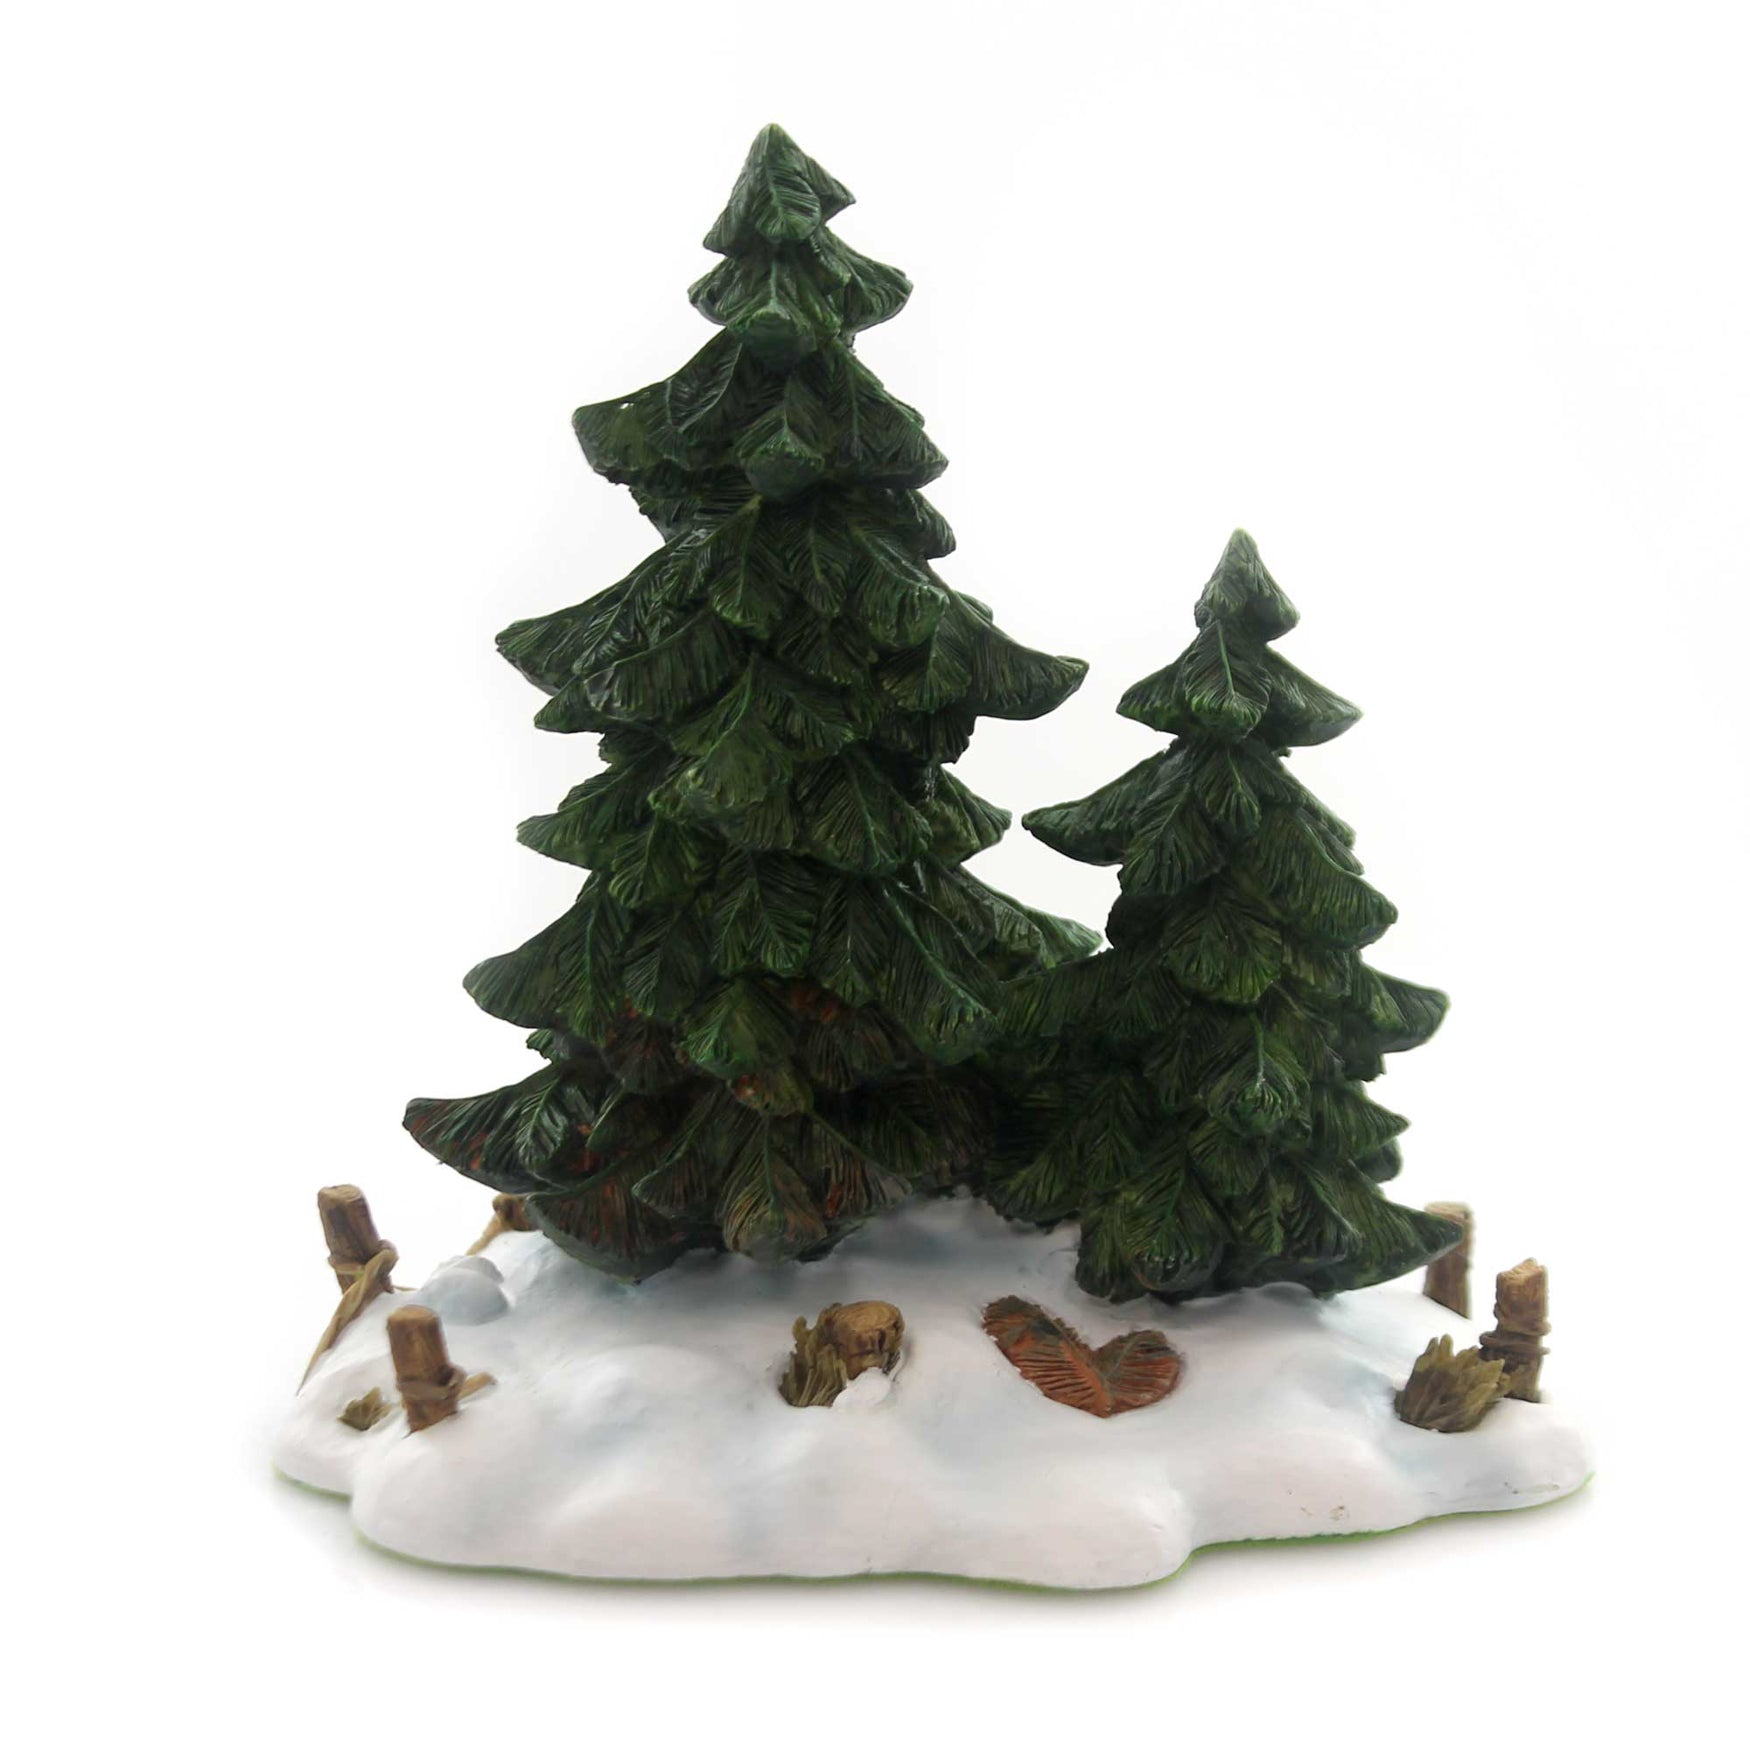 Department 56 Christmas Tree.Department 56 Accessory Double Pine Trees Polyresin Retired Village 52619